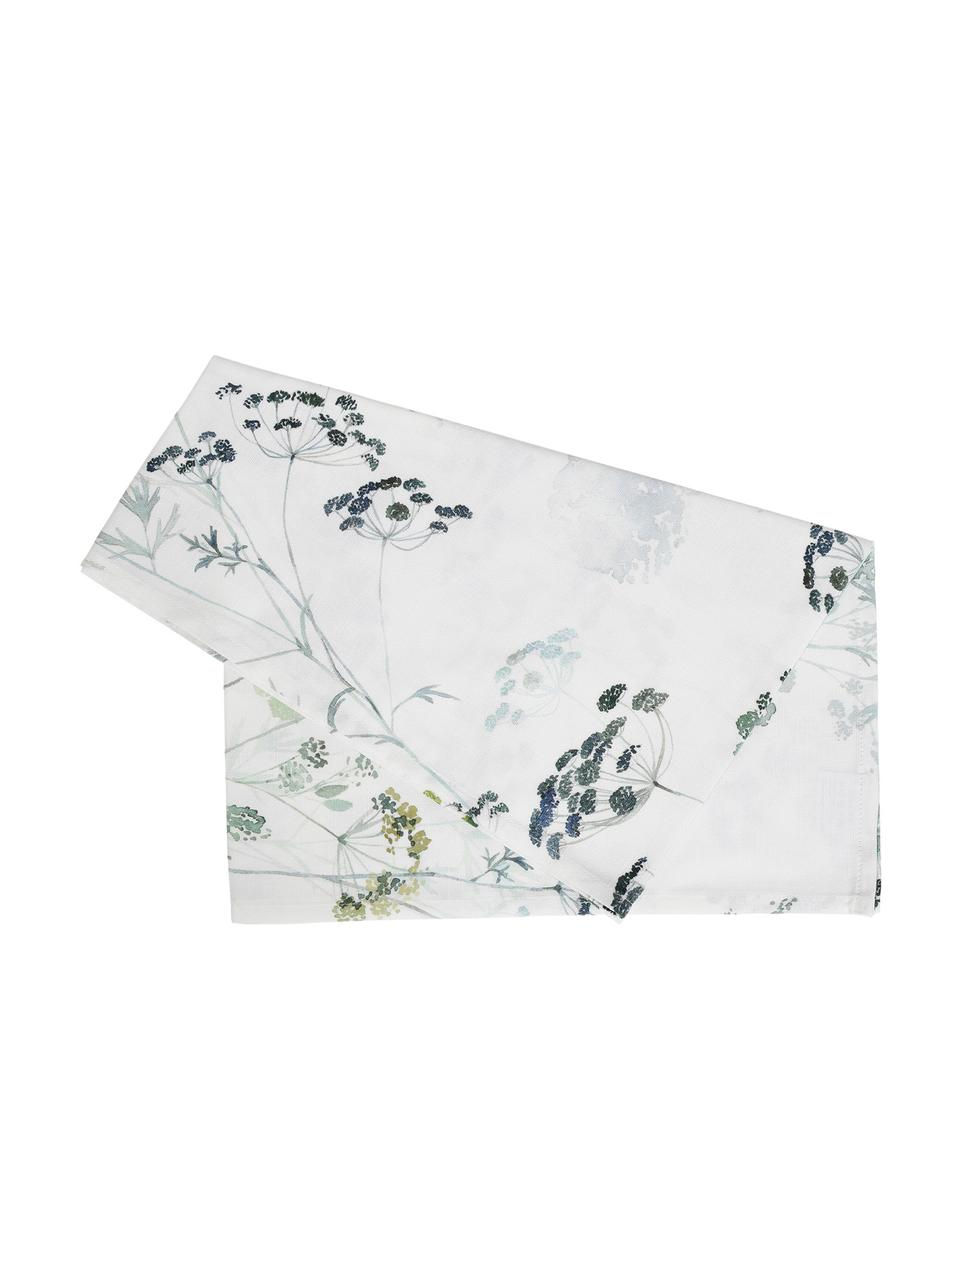 Runner in cotone con motivo floreale Herbier, 100% cotone, Bianco, verde, Larg. 50 x Lung. 160 cm